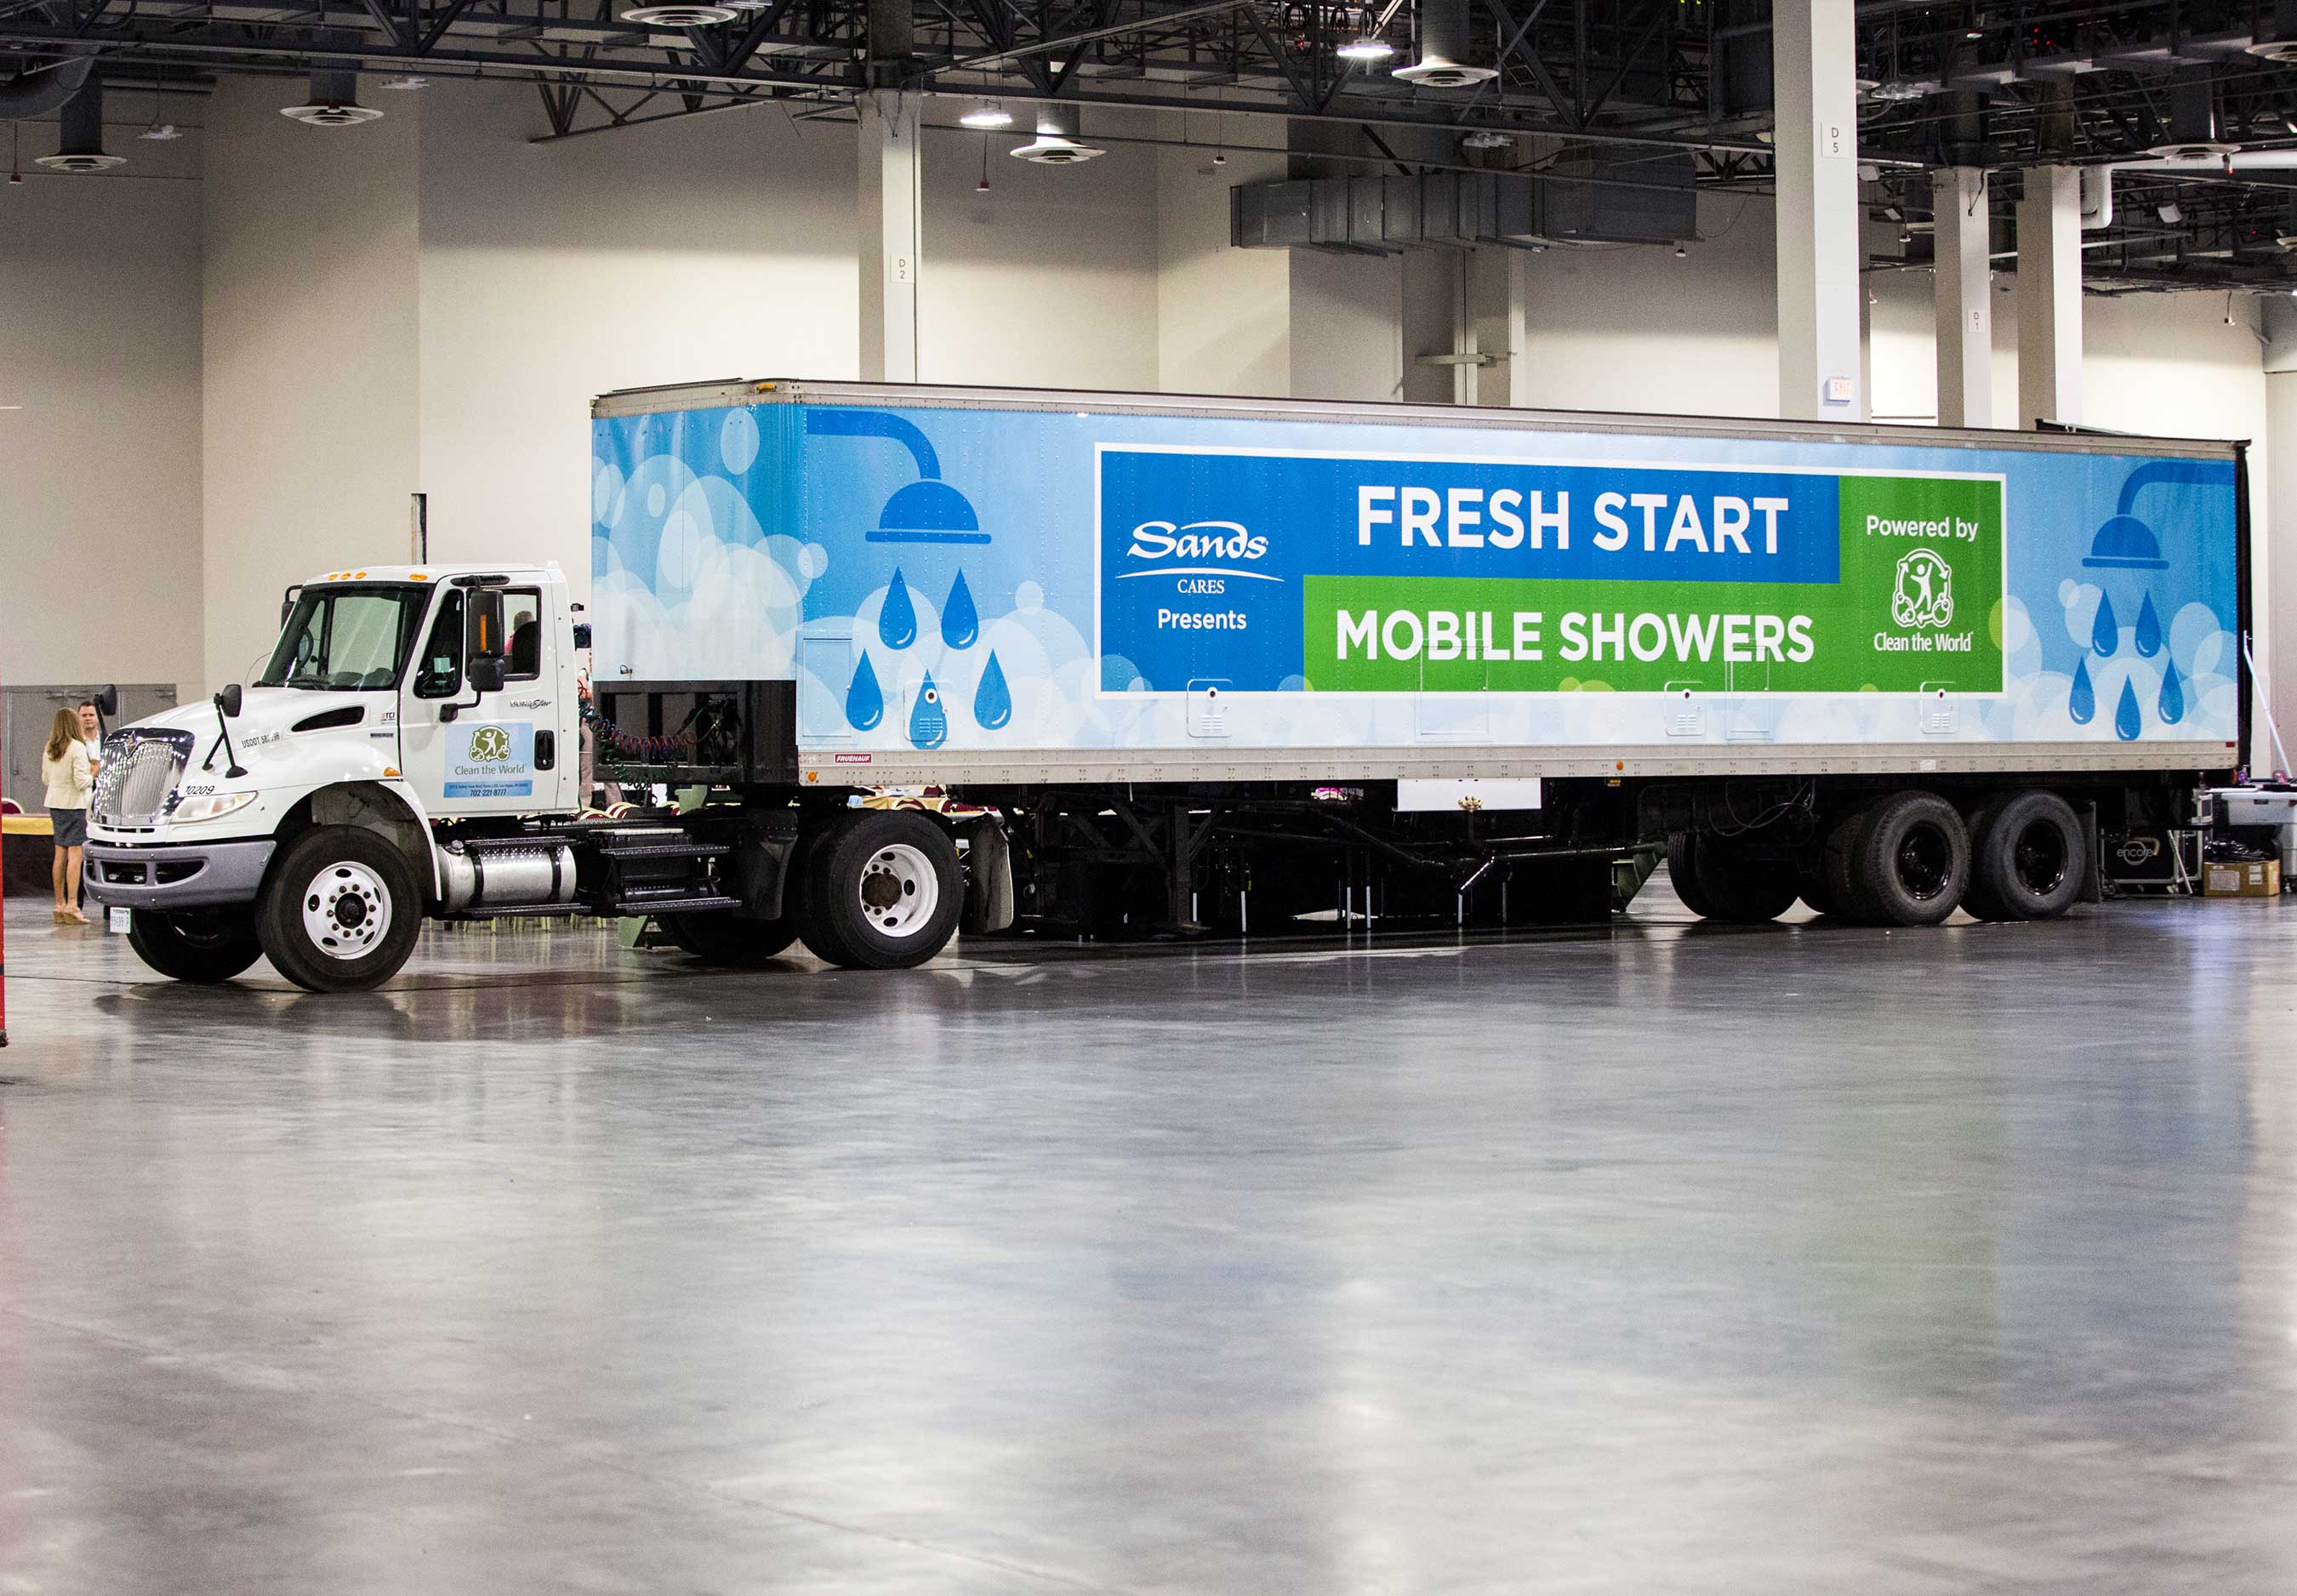 On July 27, Las Vegas Sands and Clean the World introduced a new hygiene service for the homeless in Las Vegas with Fresh Start Mobile Showers, a traveling hygiene unit that visits locations serving the homeless to provide showers, hygiene supplies and other resources.